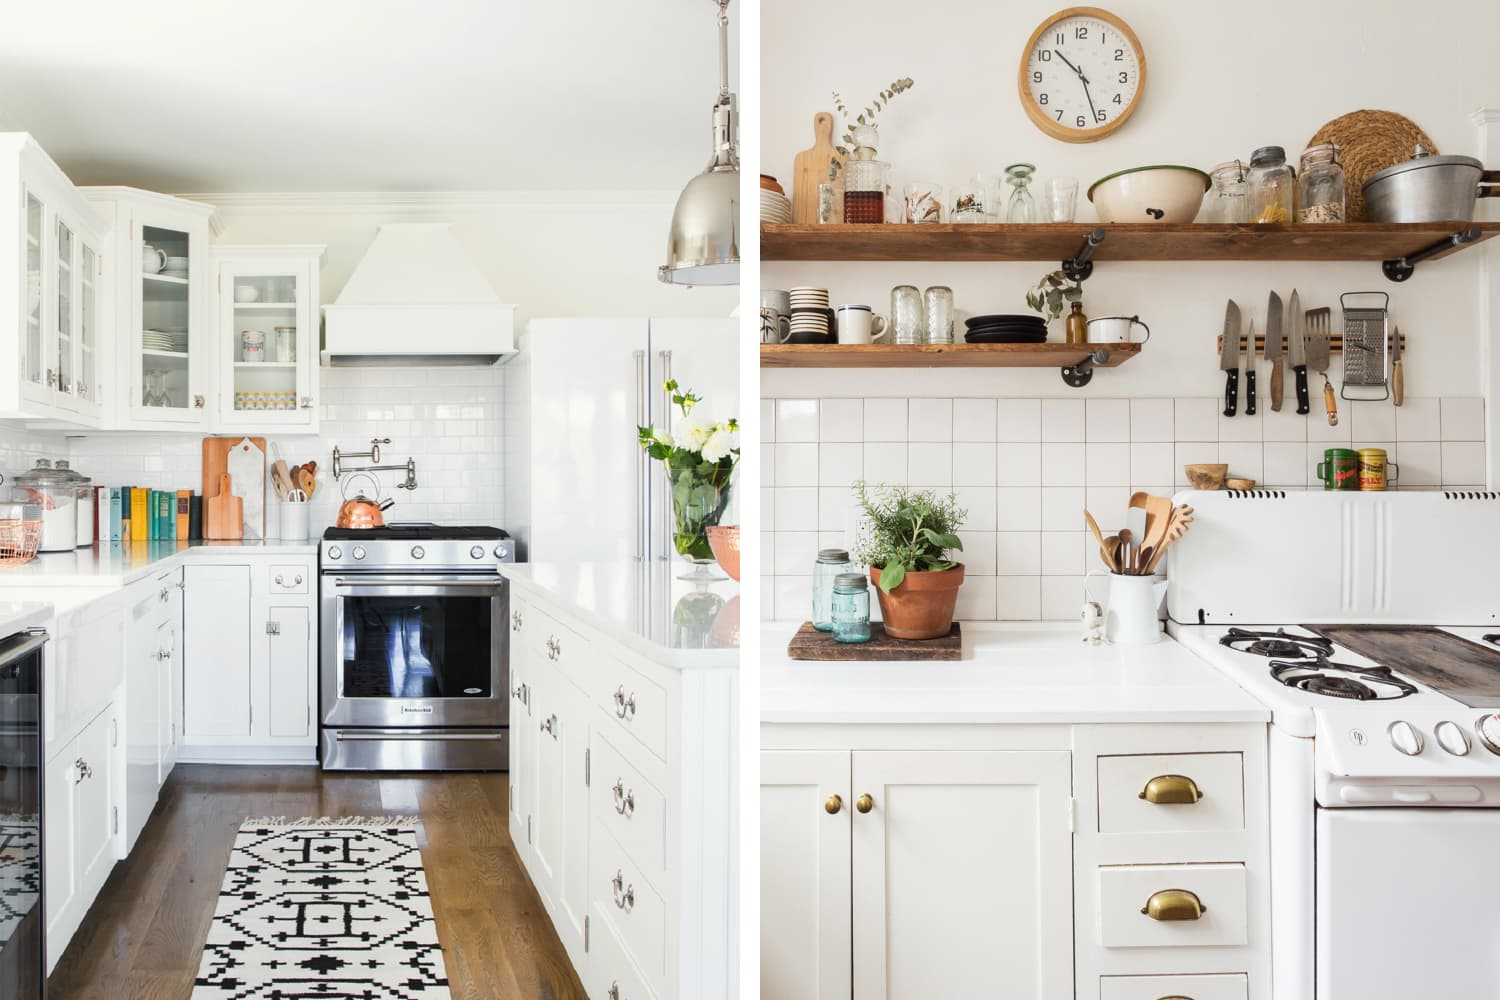 10 of the Most Popular Farmhouse Kitchens from Our Friends at Apartment Therapy